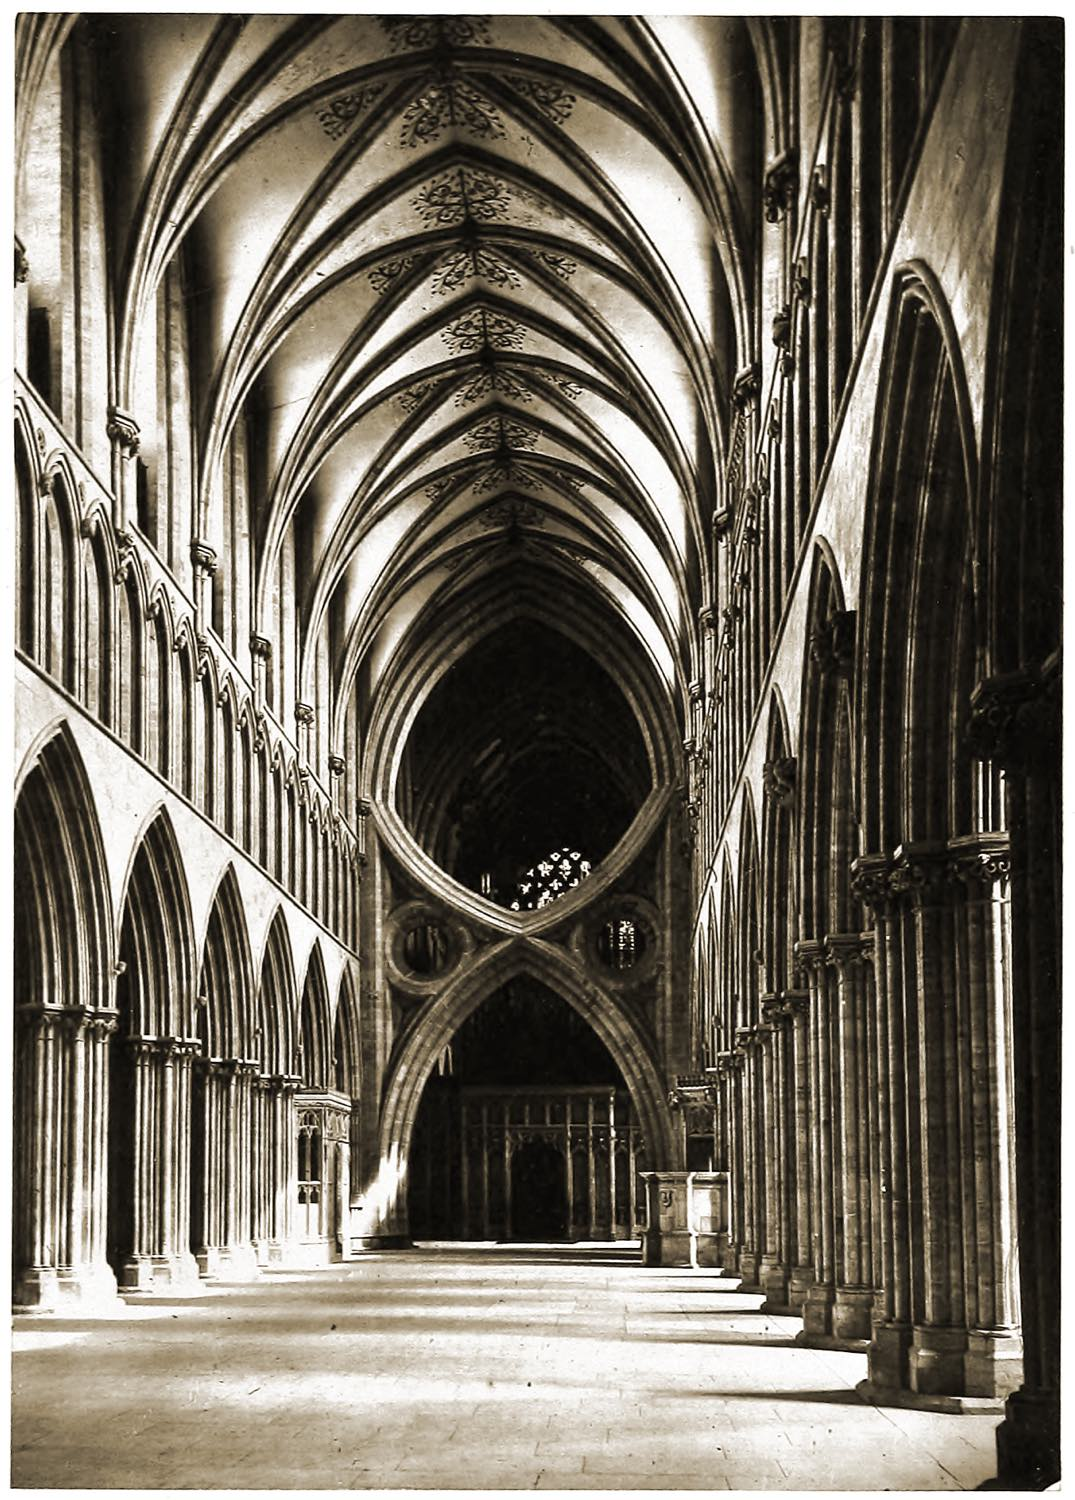 Nave, Wells Cathedral, England, Gothic, architecture,